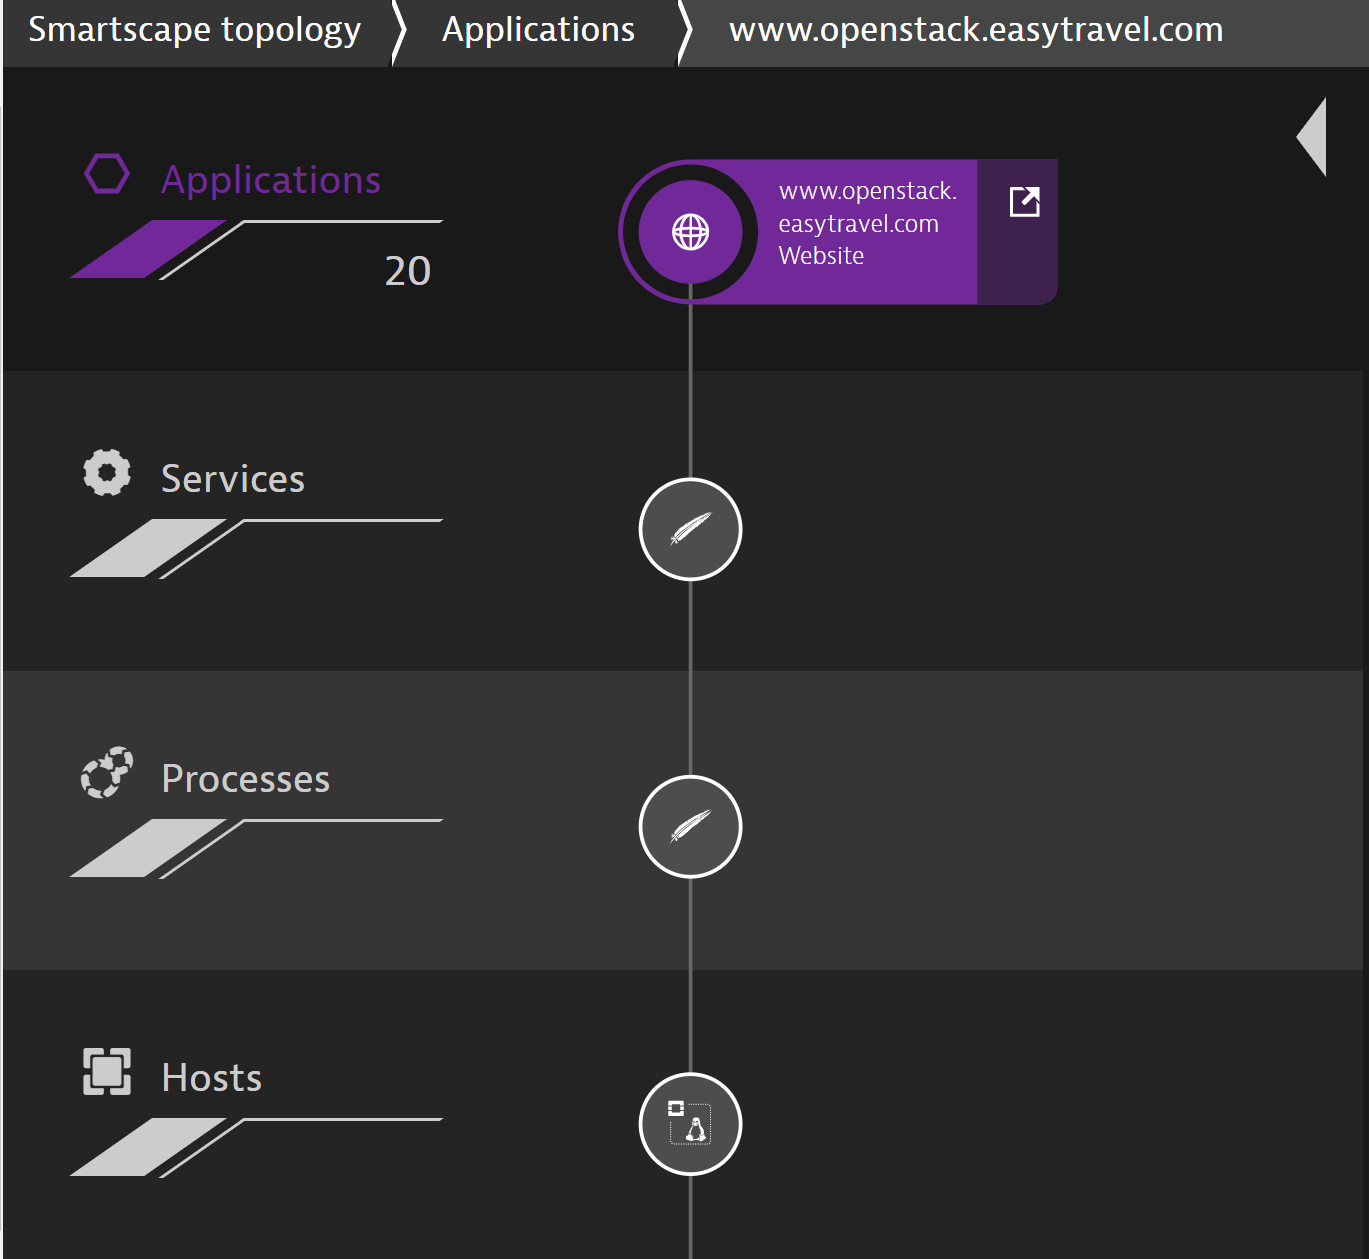 Appliction layer in Dyatrace Smartscape